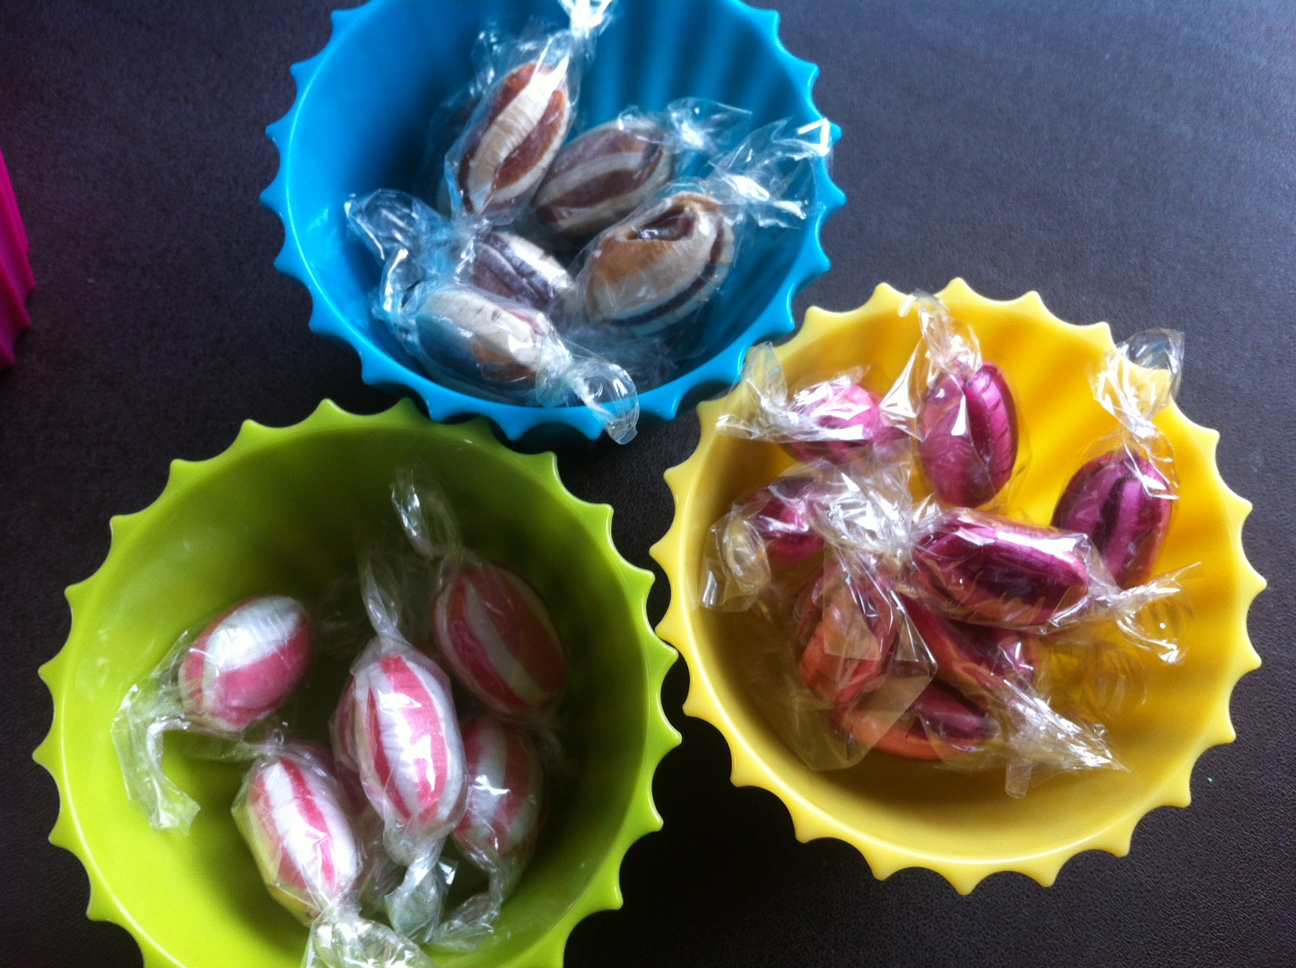 Sugar-free Sweetie Feast from The Candy Makers